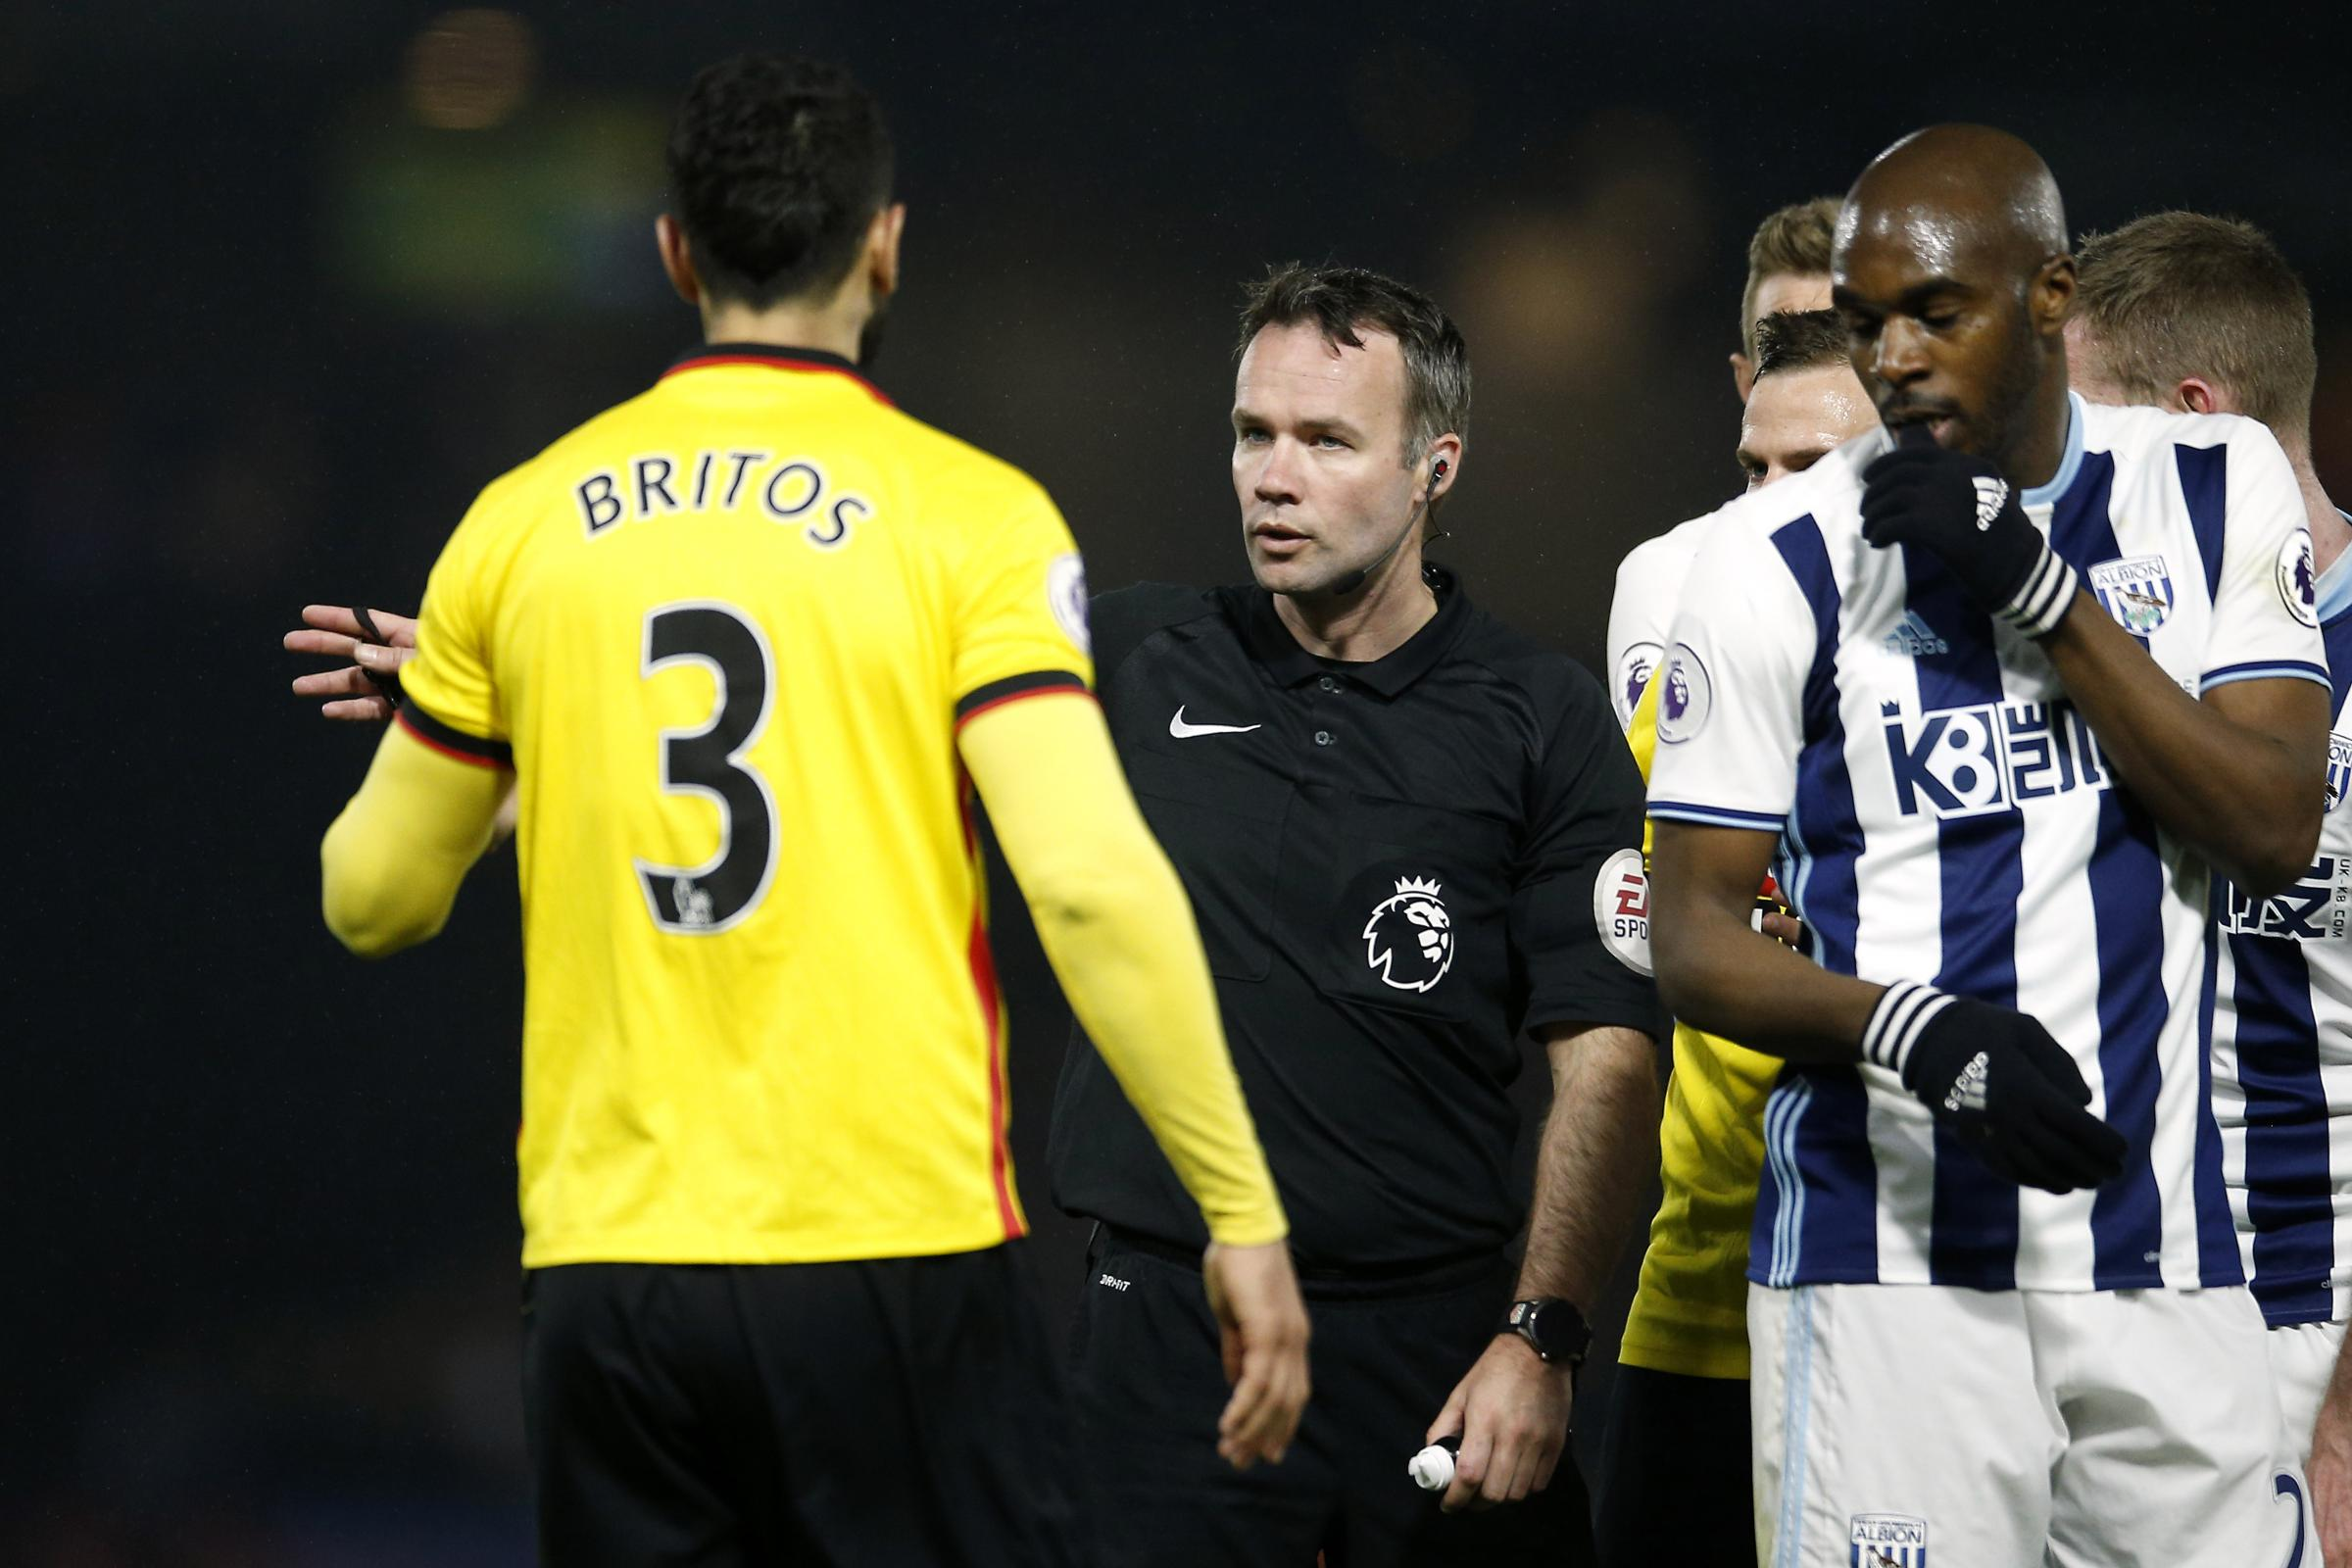 Referee Paul Tierney sent off Miguel Britos against West Brom in 2017. Picture: Action Images